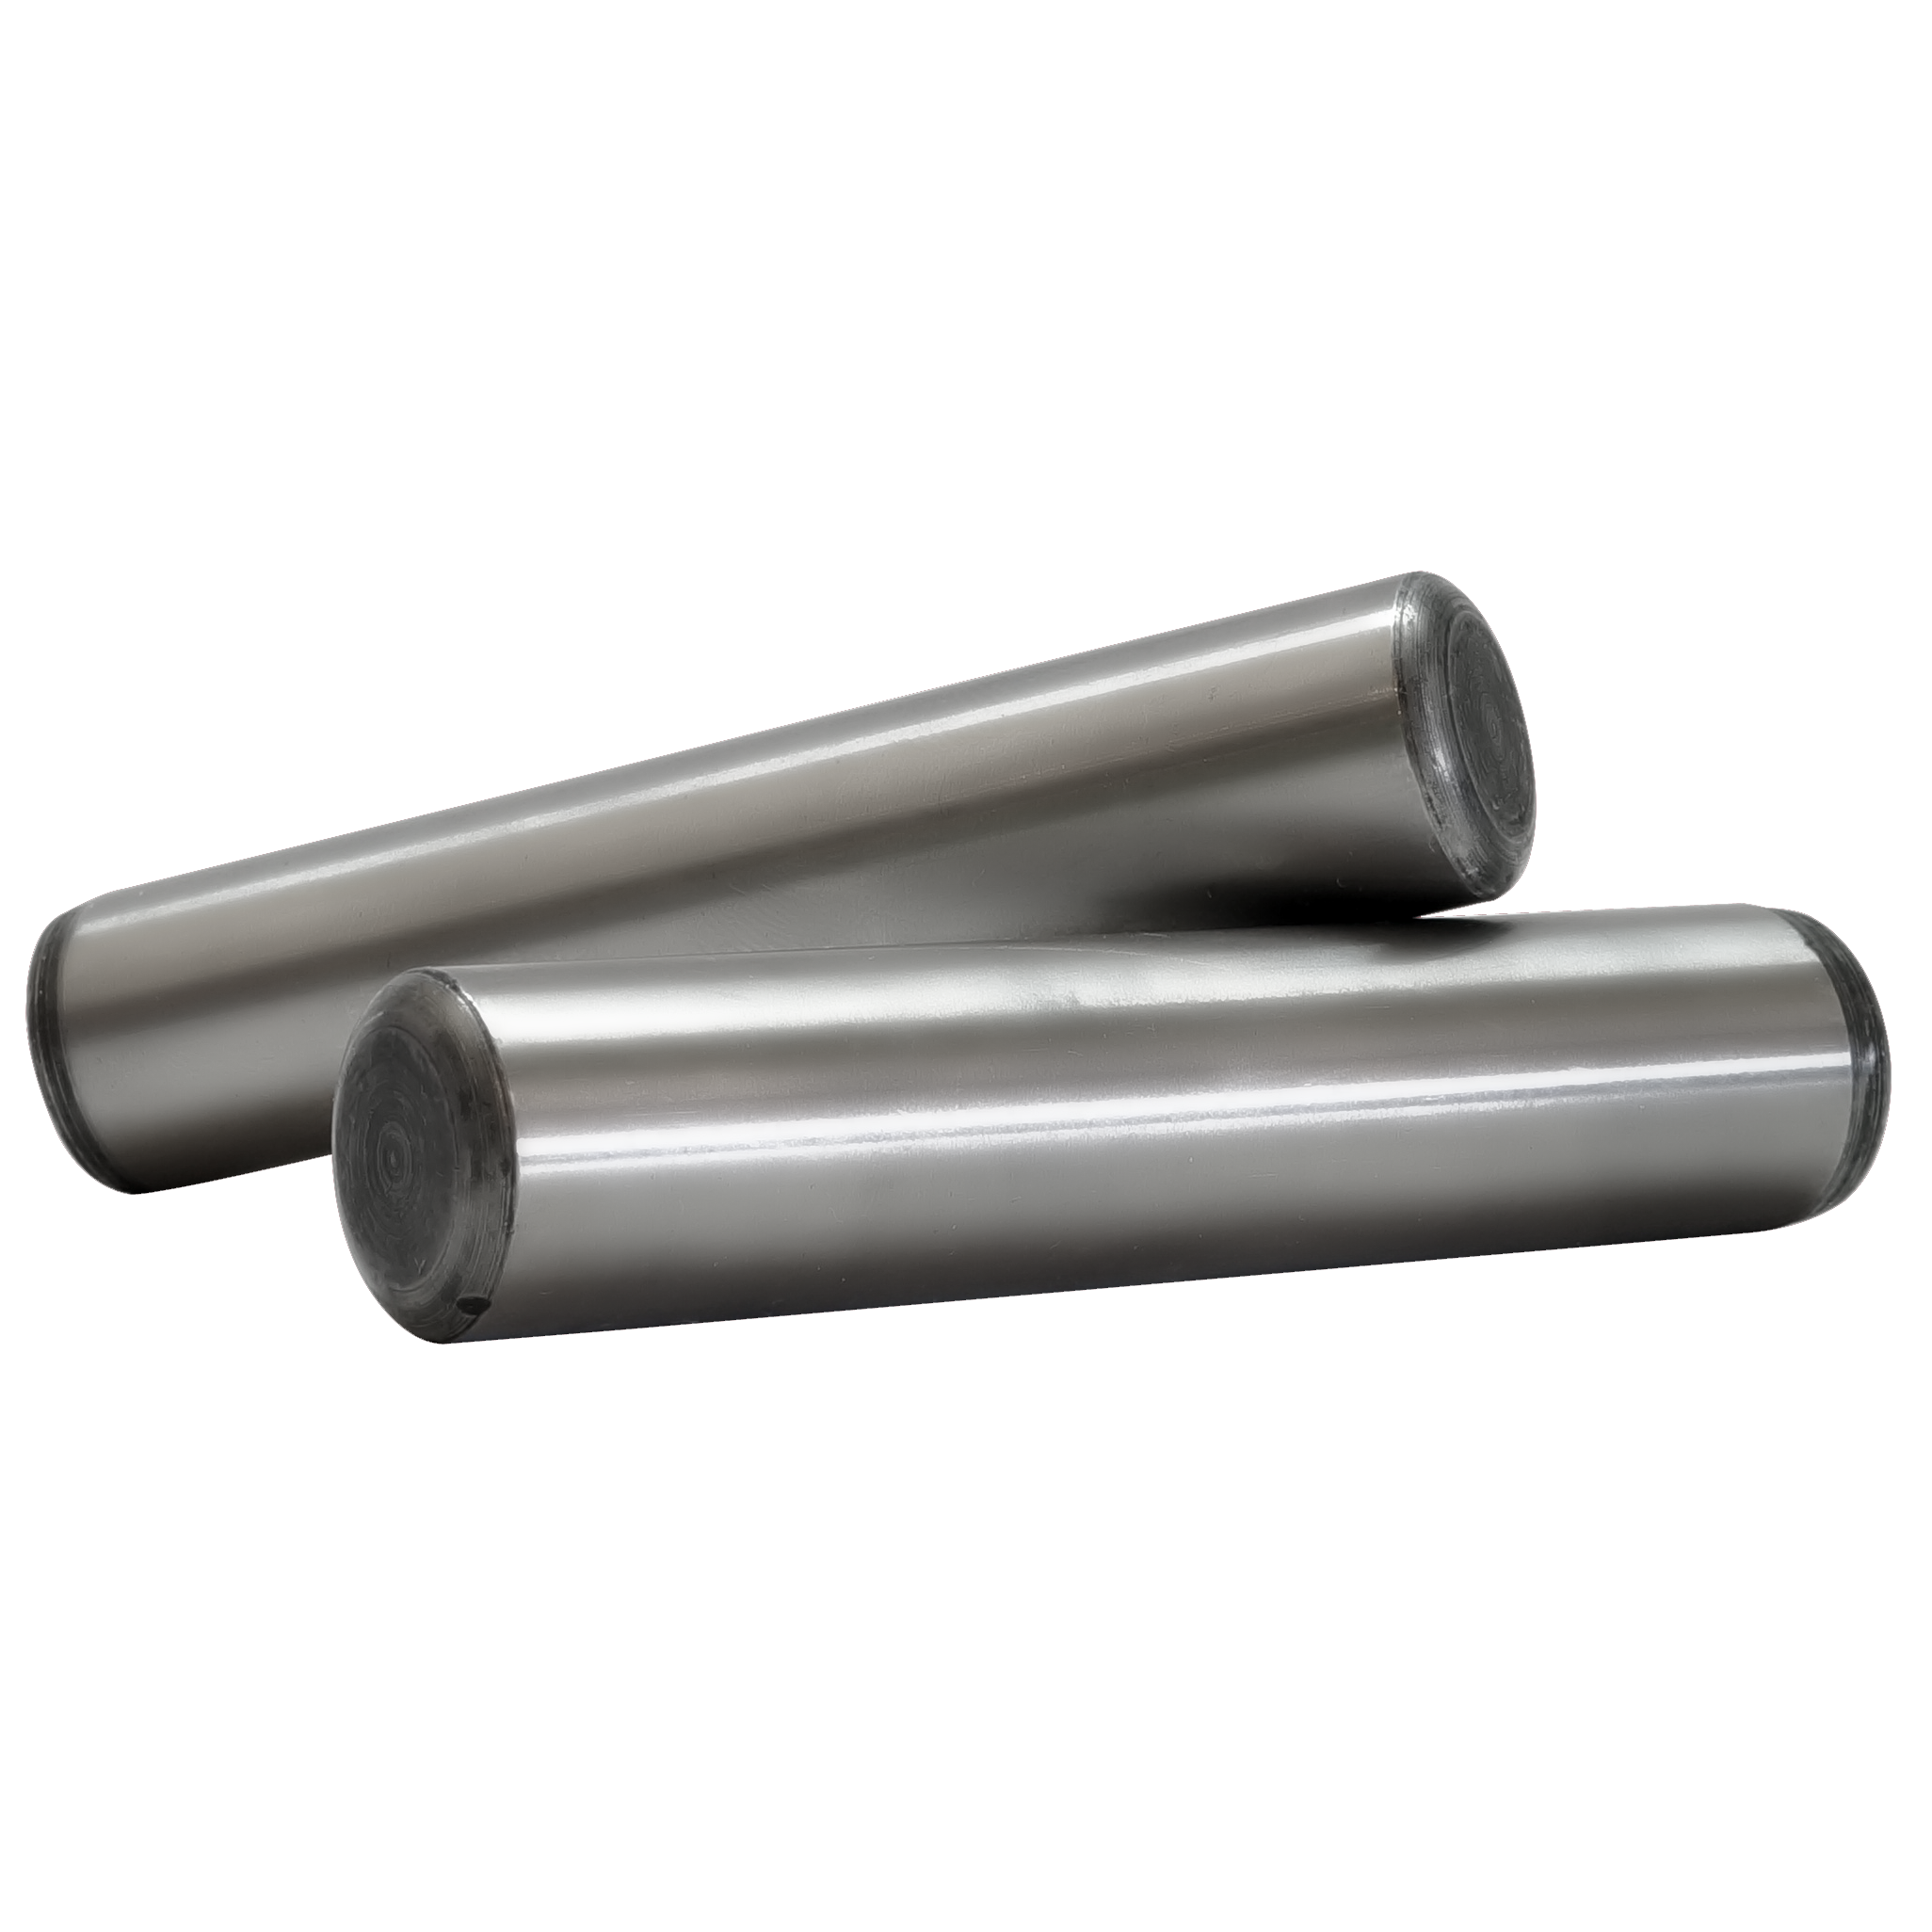 "1x3 1/2 ASME B18.8.2 Alloy Steel Dowel Pin Hardened Ground 0.0002"" Over Sized  (Unbrako)"